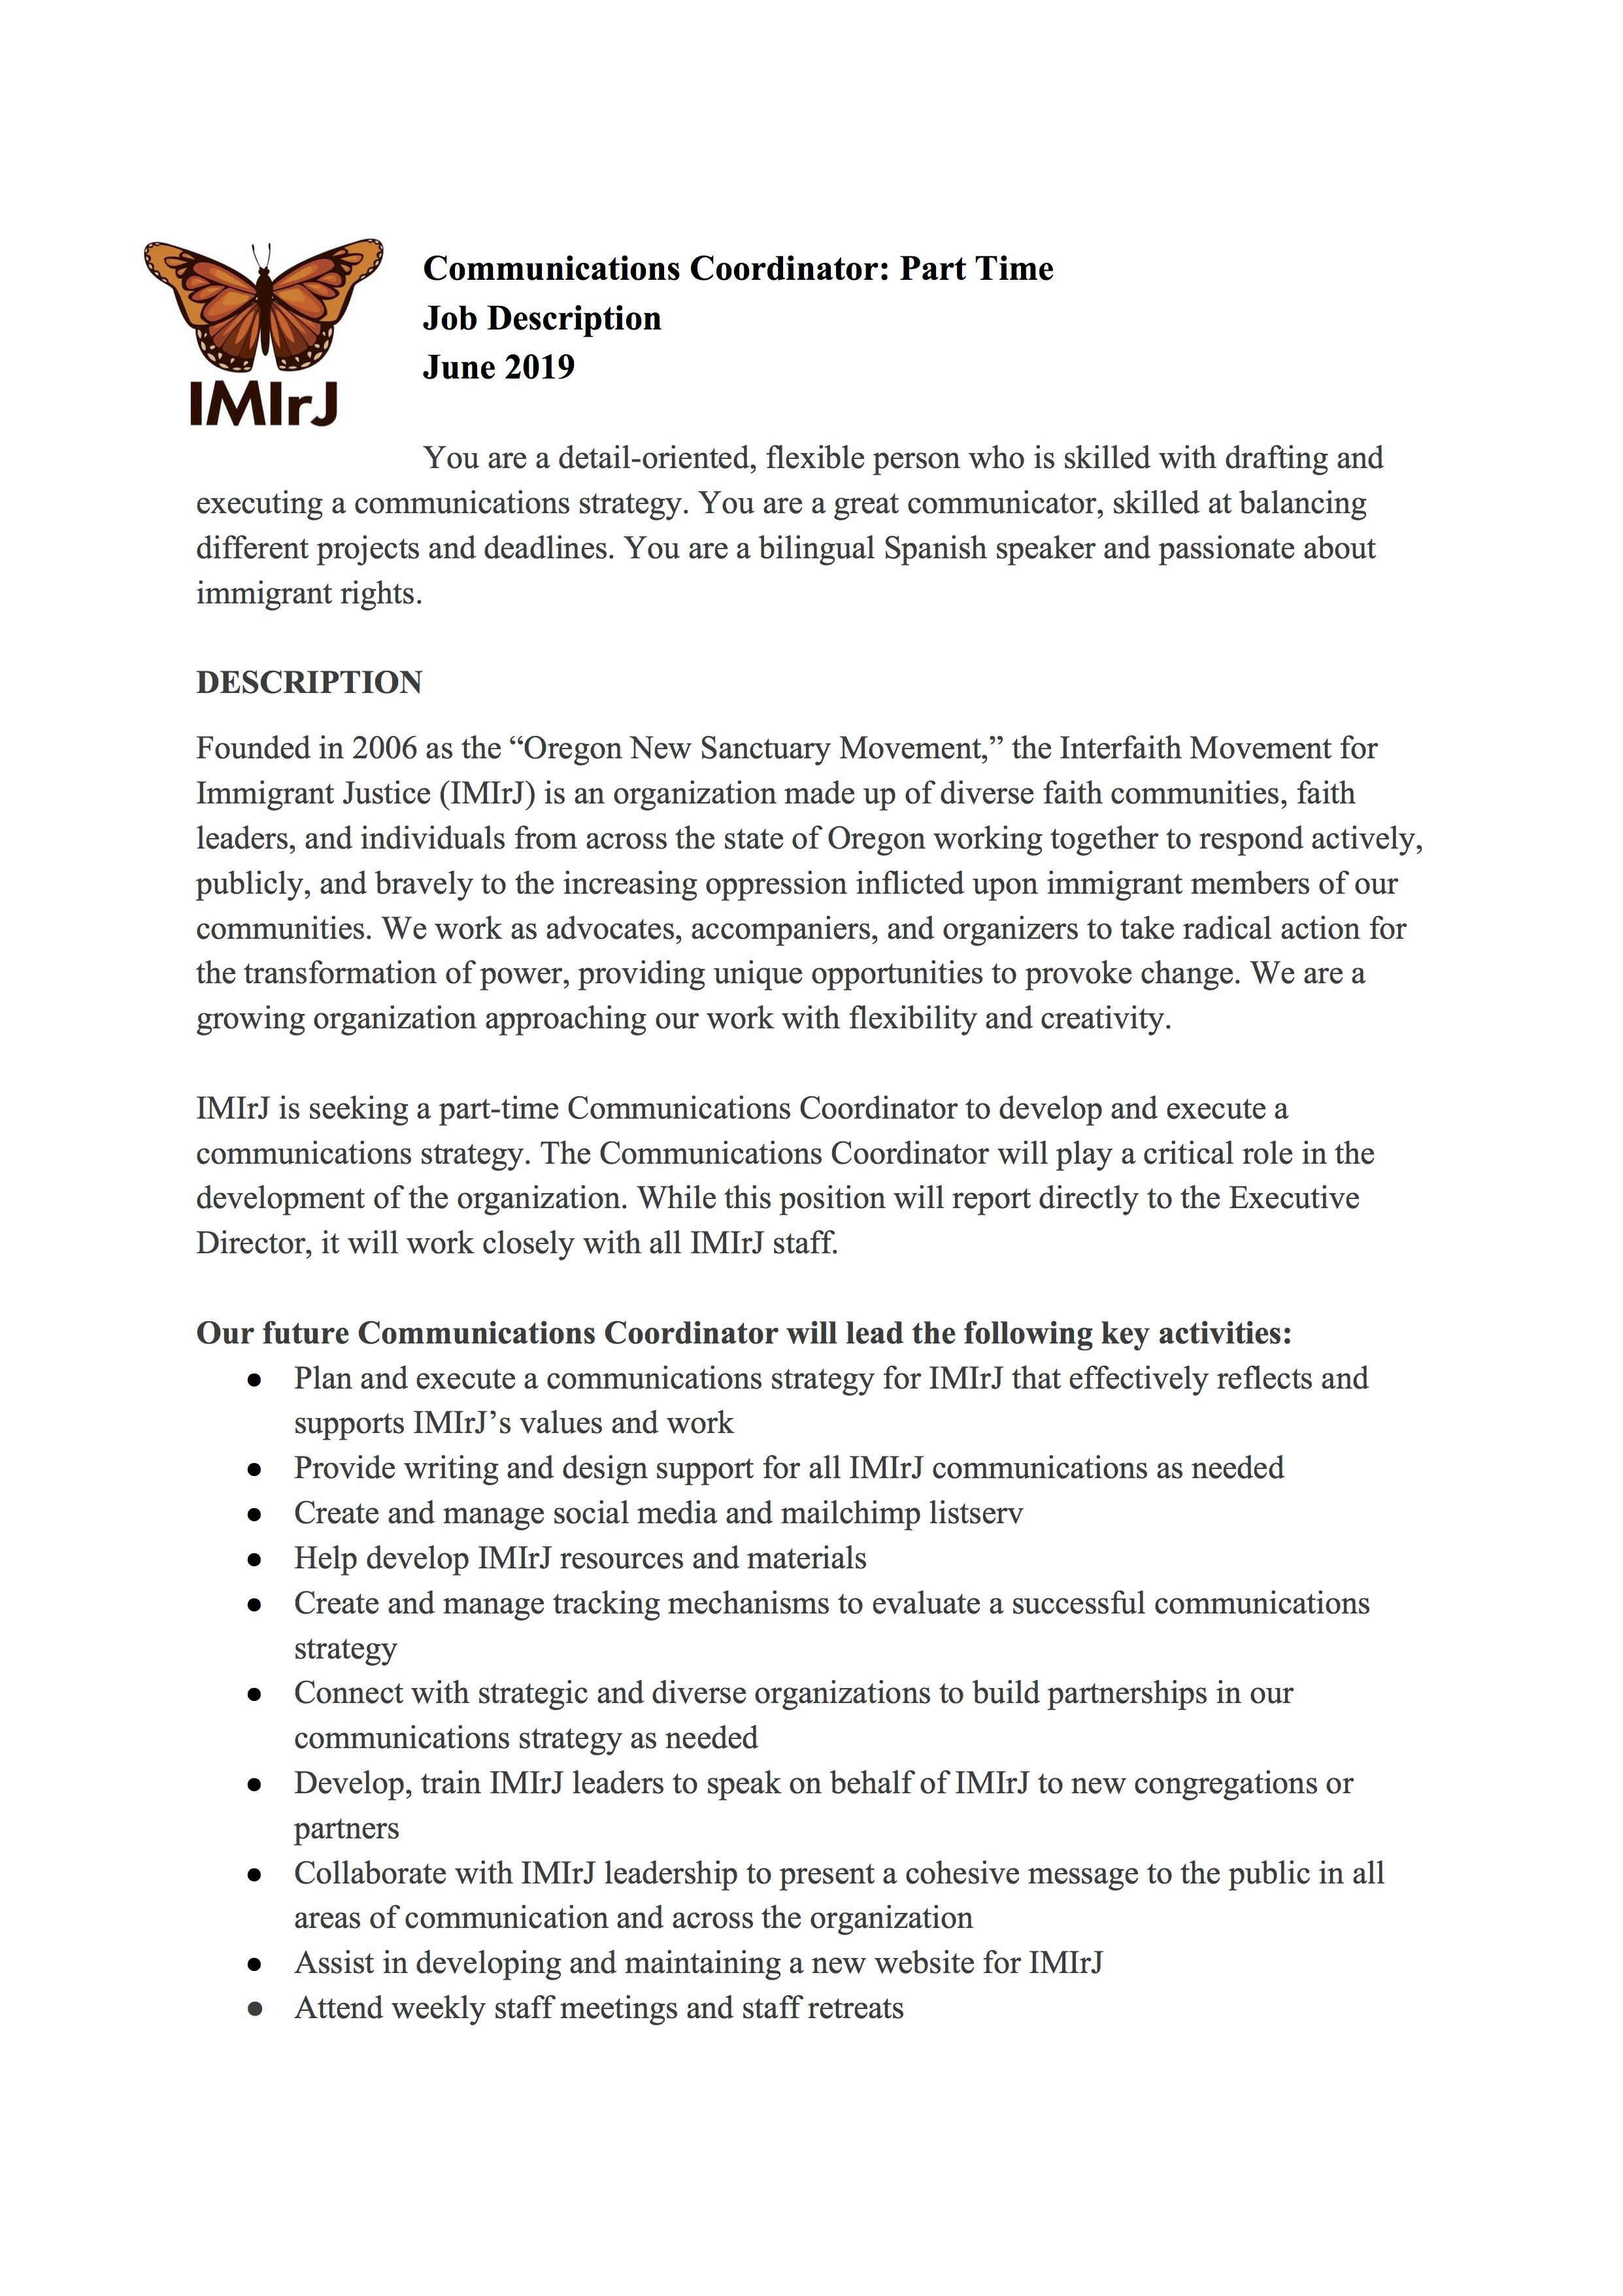 IMIrJ is hiring. - We are looking for a part-time Communications Coordinator. We will begin reviewing applications starting July 24th. Position will remain open until filled.